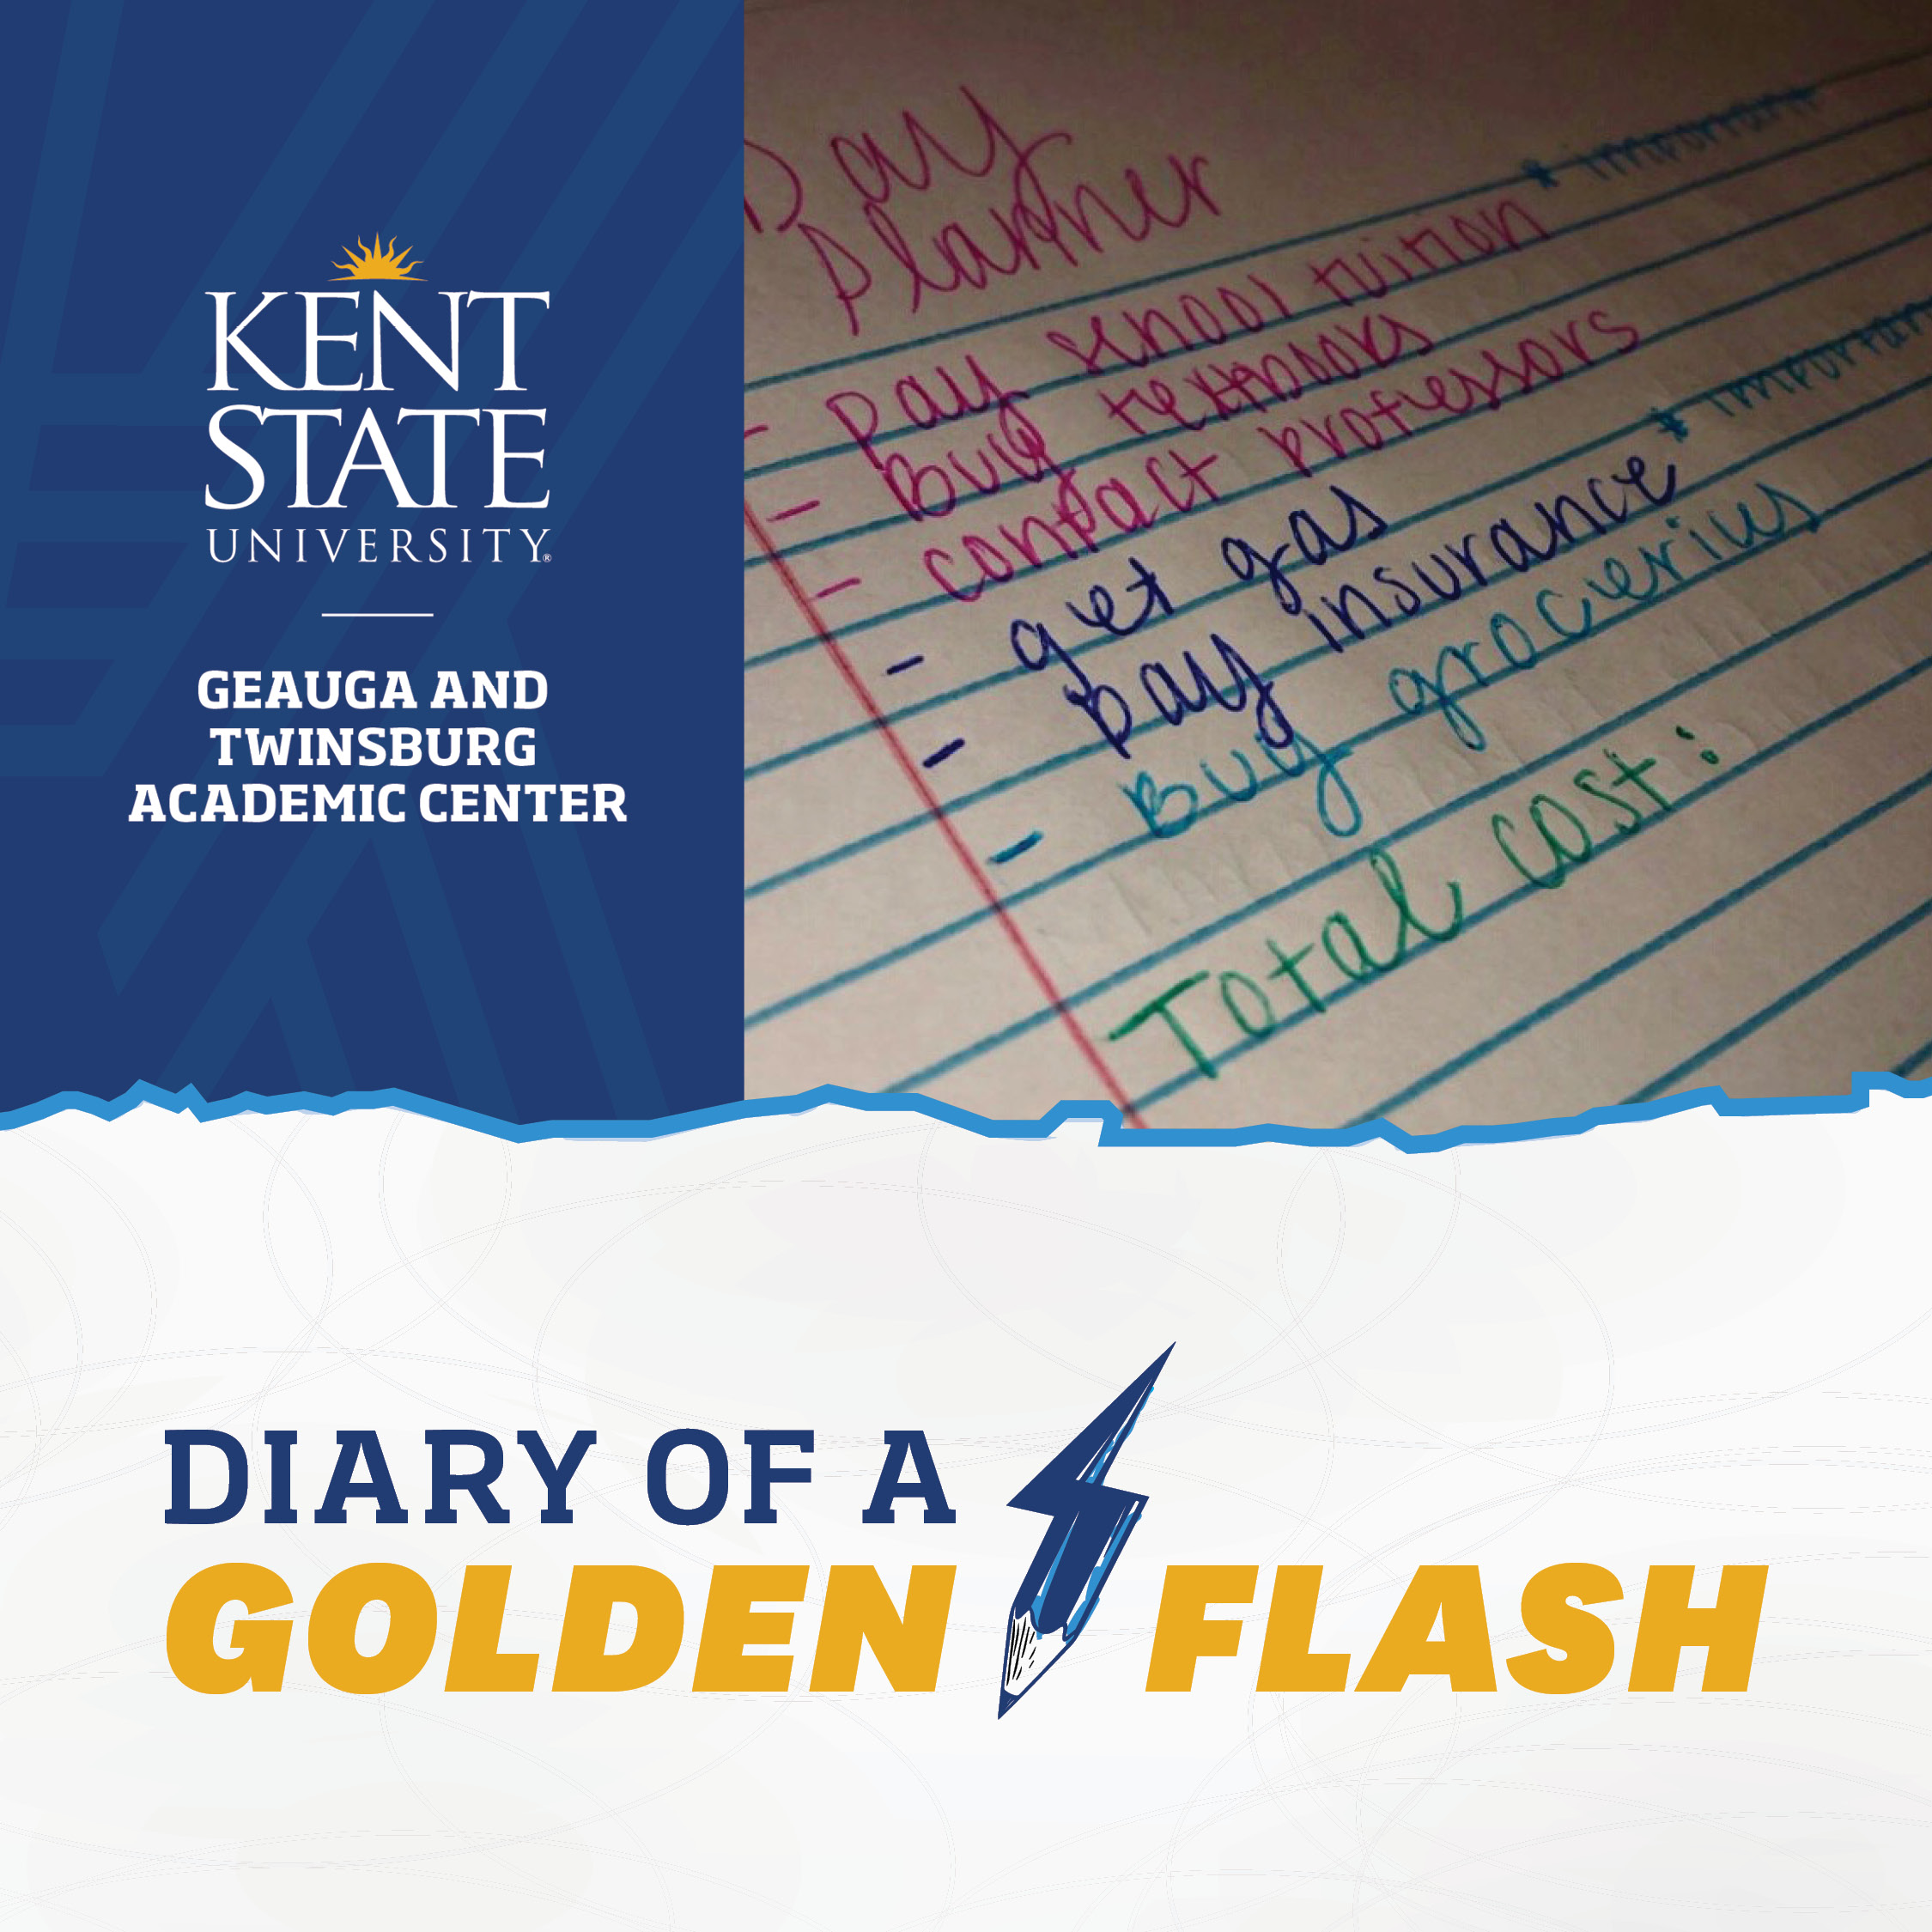 Diary of a Golden Flash Note Book